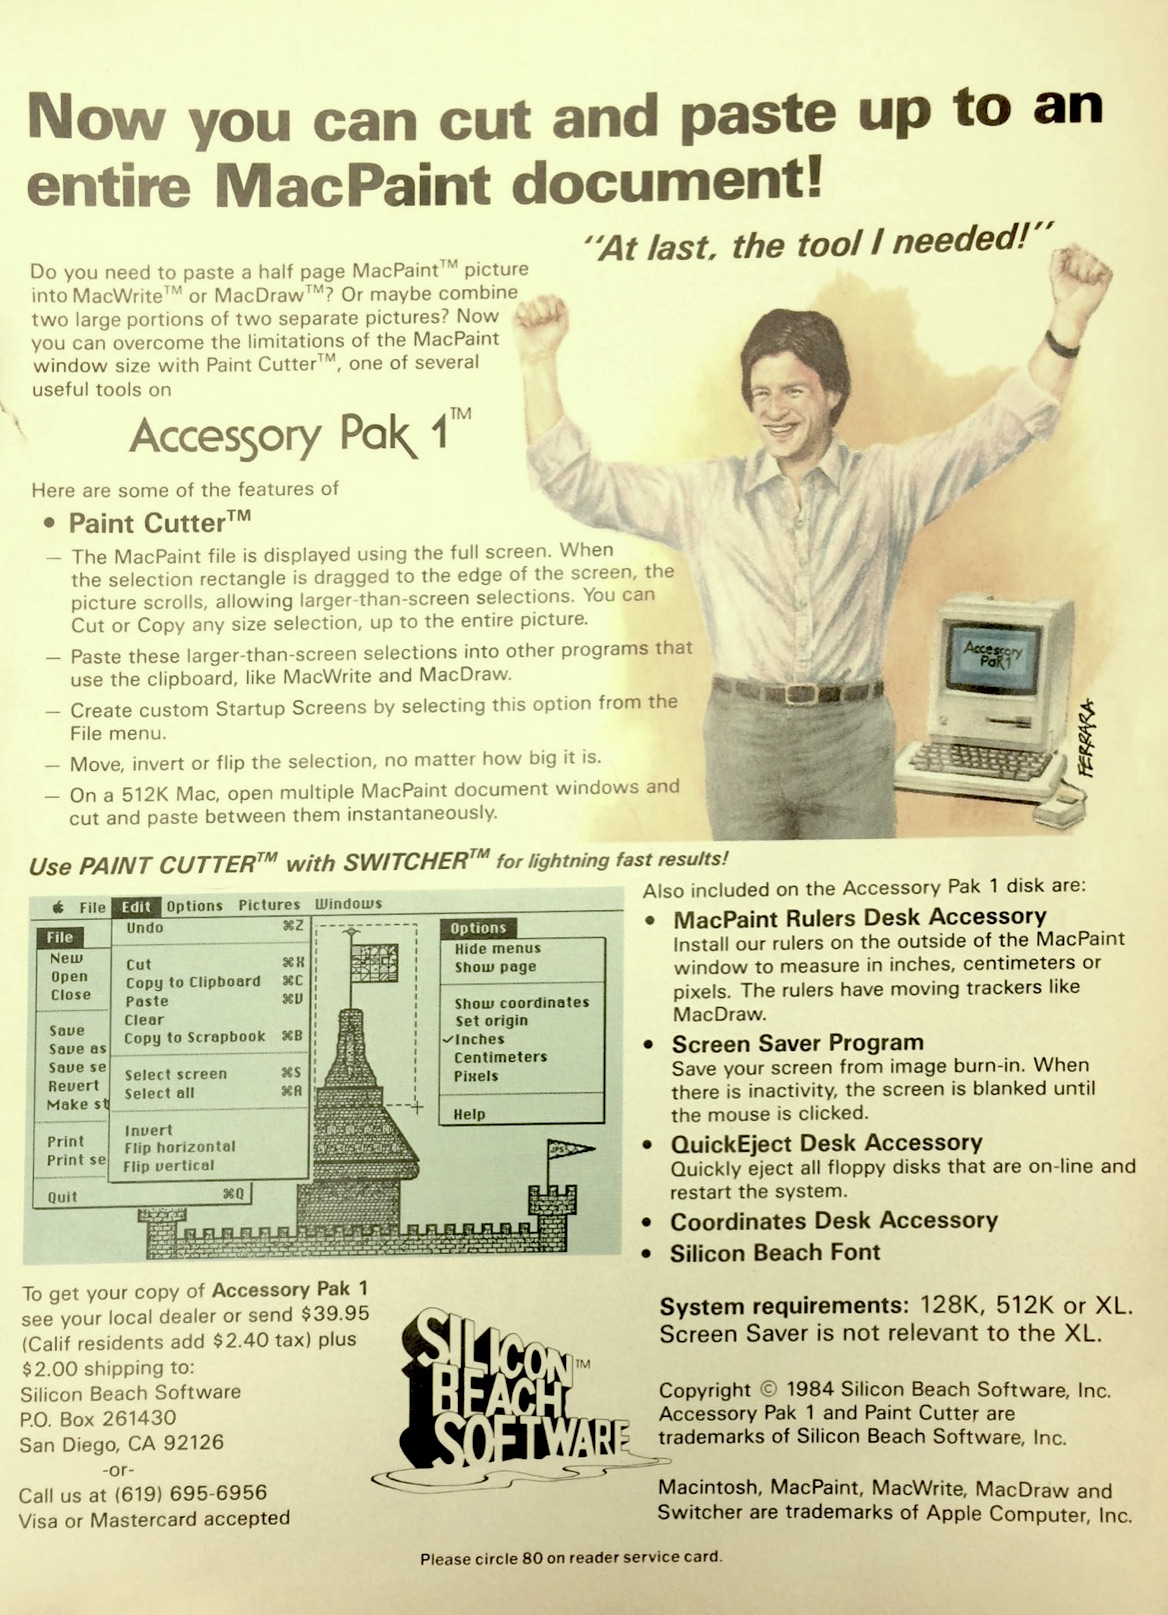 AD ORIGINALLY PUBLISHED IN OCTOBER 1985 ISSUE OF MACUSER MAGAZINE (CLICK TO EXPAND)